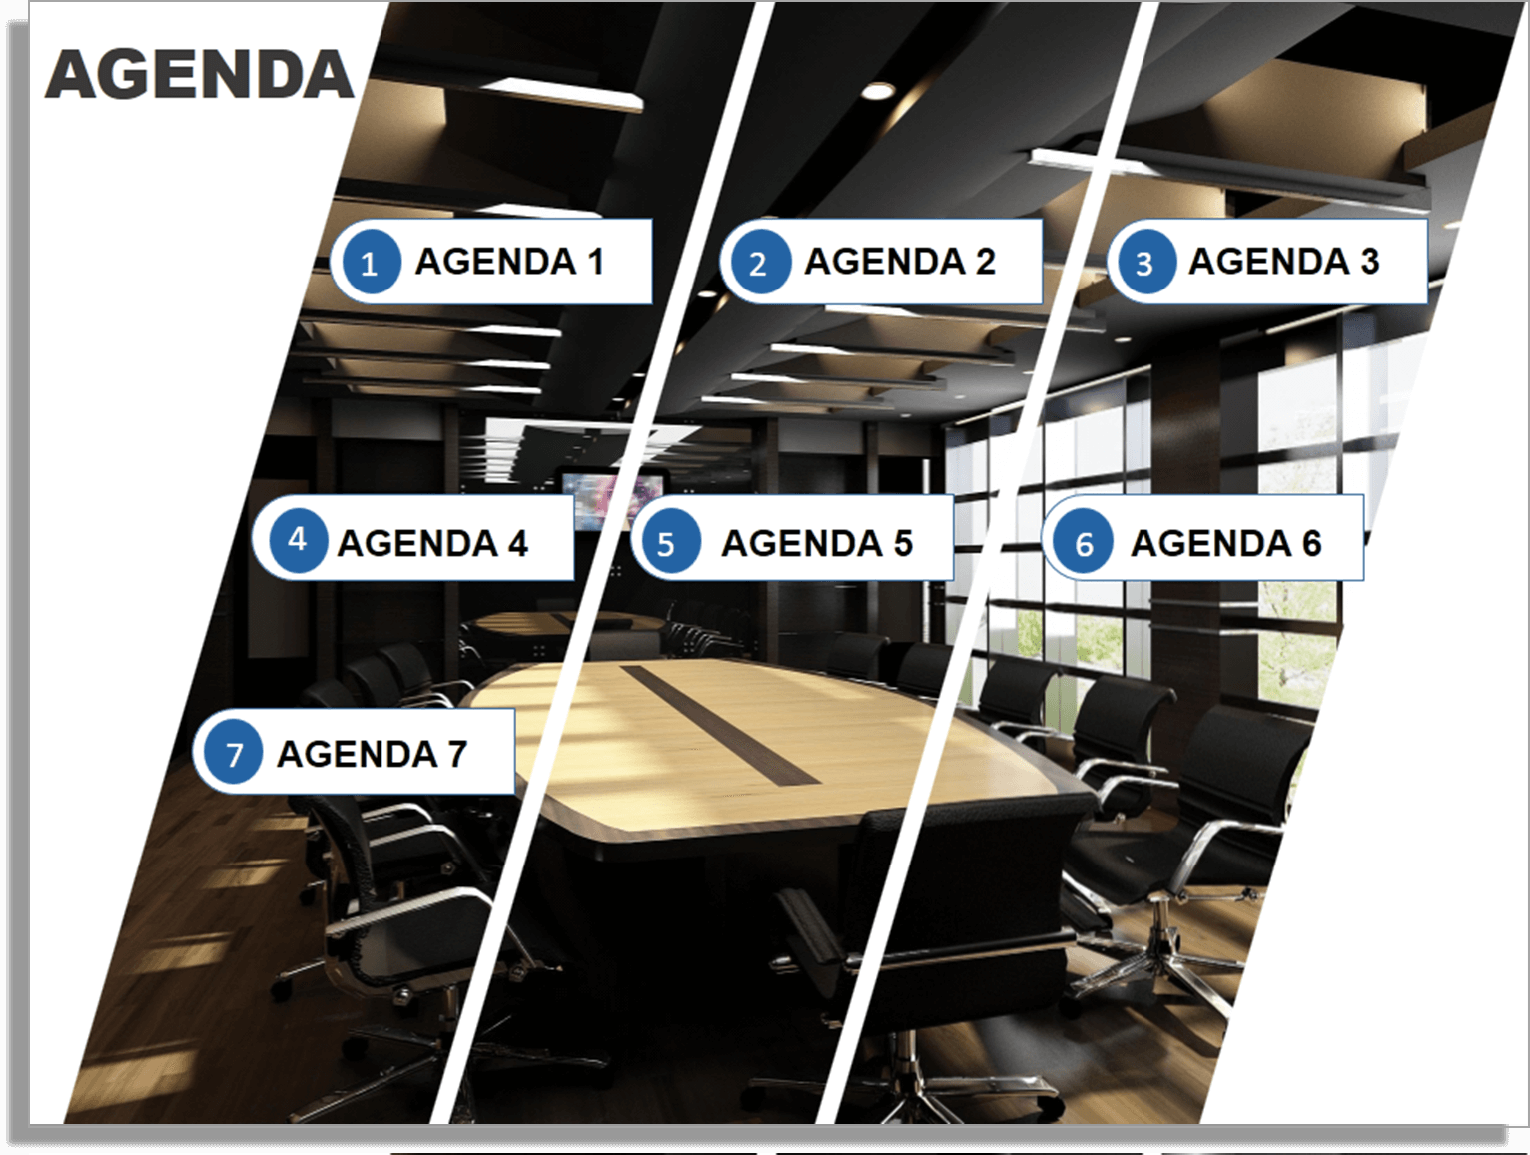 How to create a fantastic powerpoint agenda slide template in 5 how to create a fantastic powerpoint agenda slide template in 5 steps presentation hackathon 4 the slideteam blog toneelgroepblik